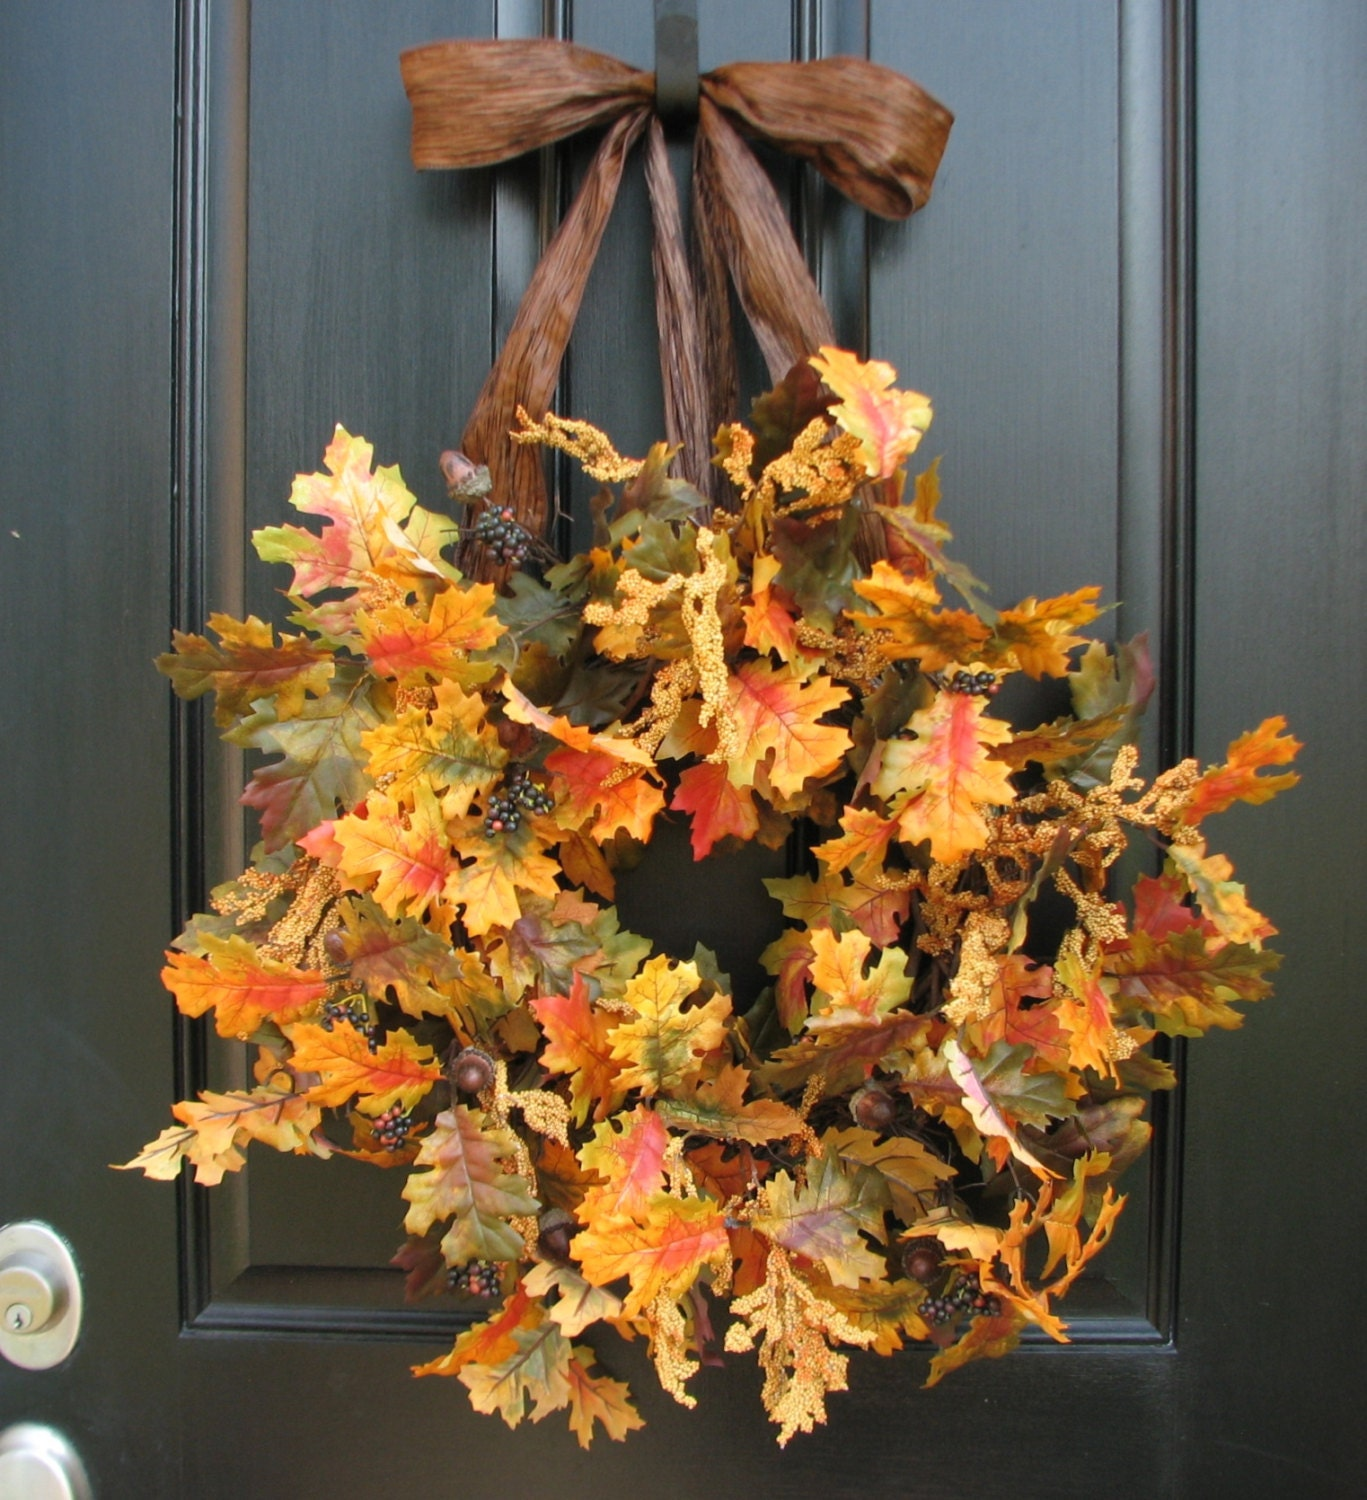 Faux Fall Wreaths Wreath For Fall Front Door Faux By: fall autumn door wreaths